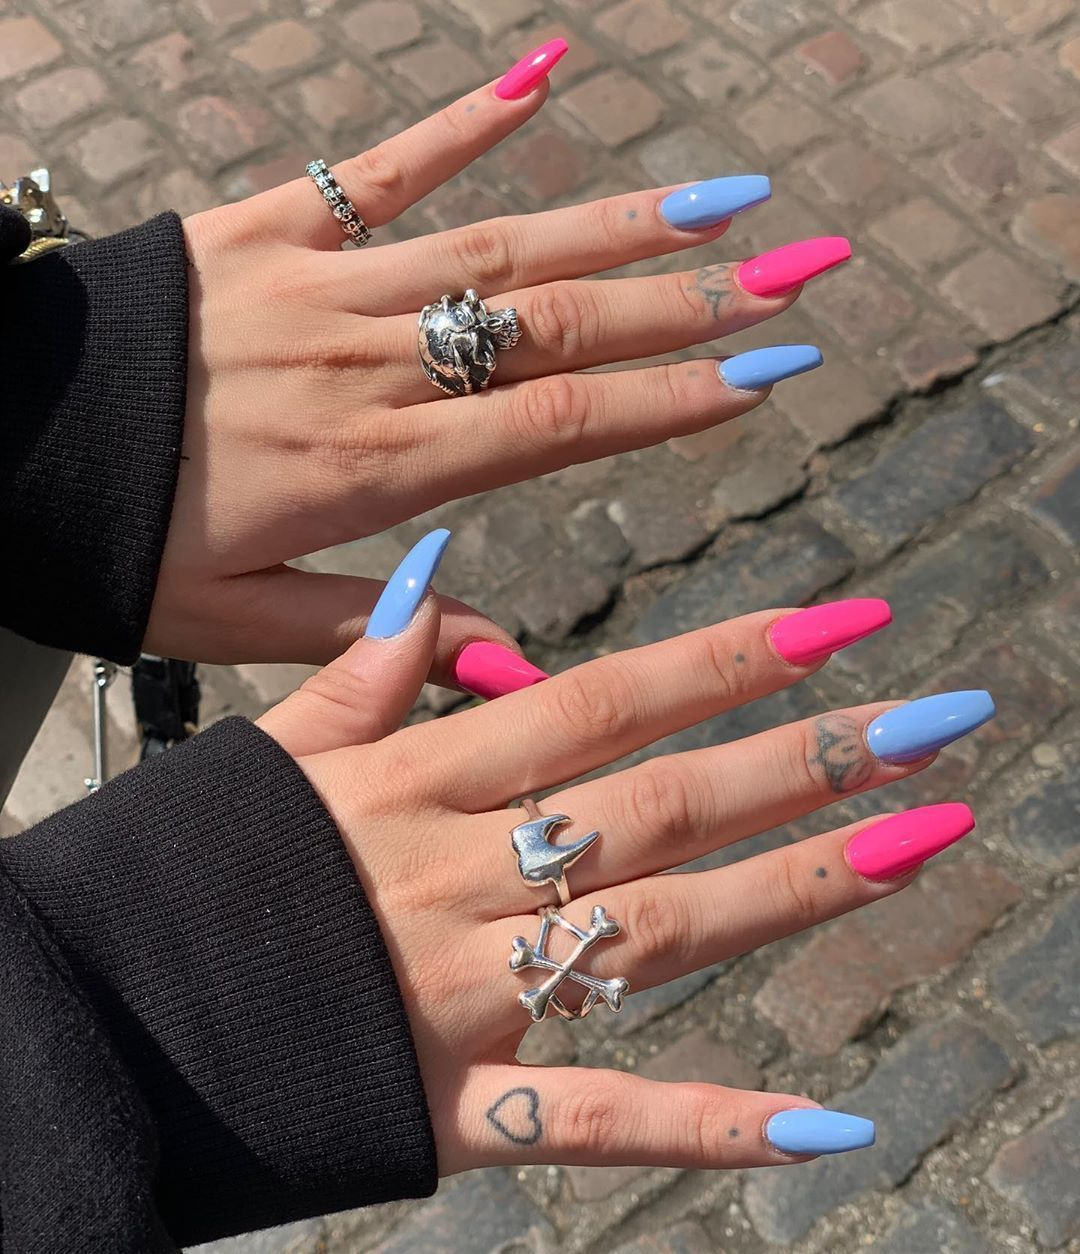 Blue and pink acrylic nails coffin shaped #blue #pink #nails #acrylic #nails # -...#acrylic #blue